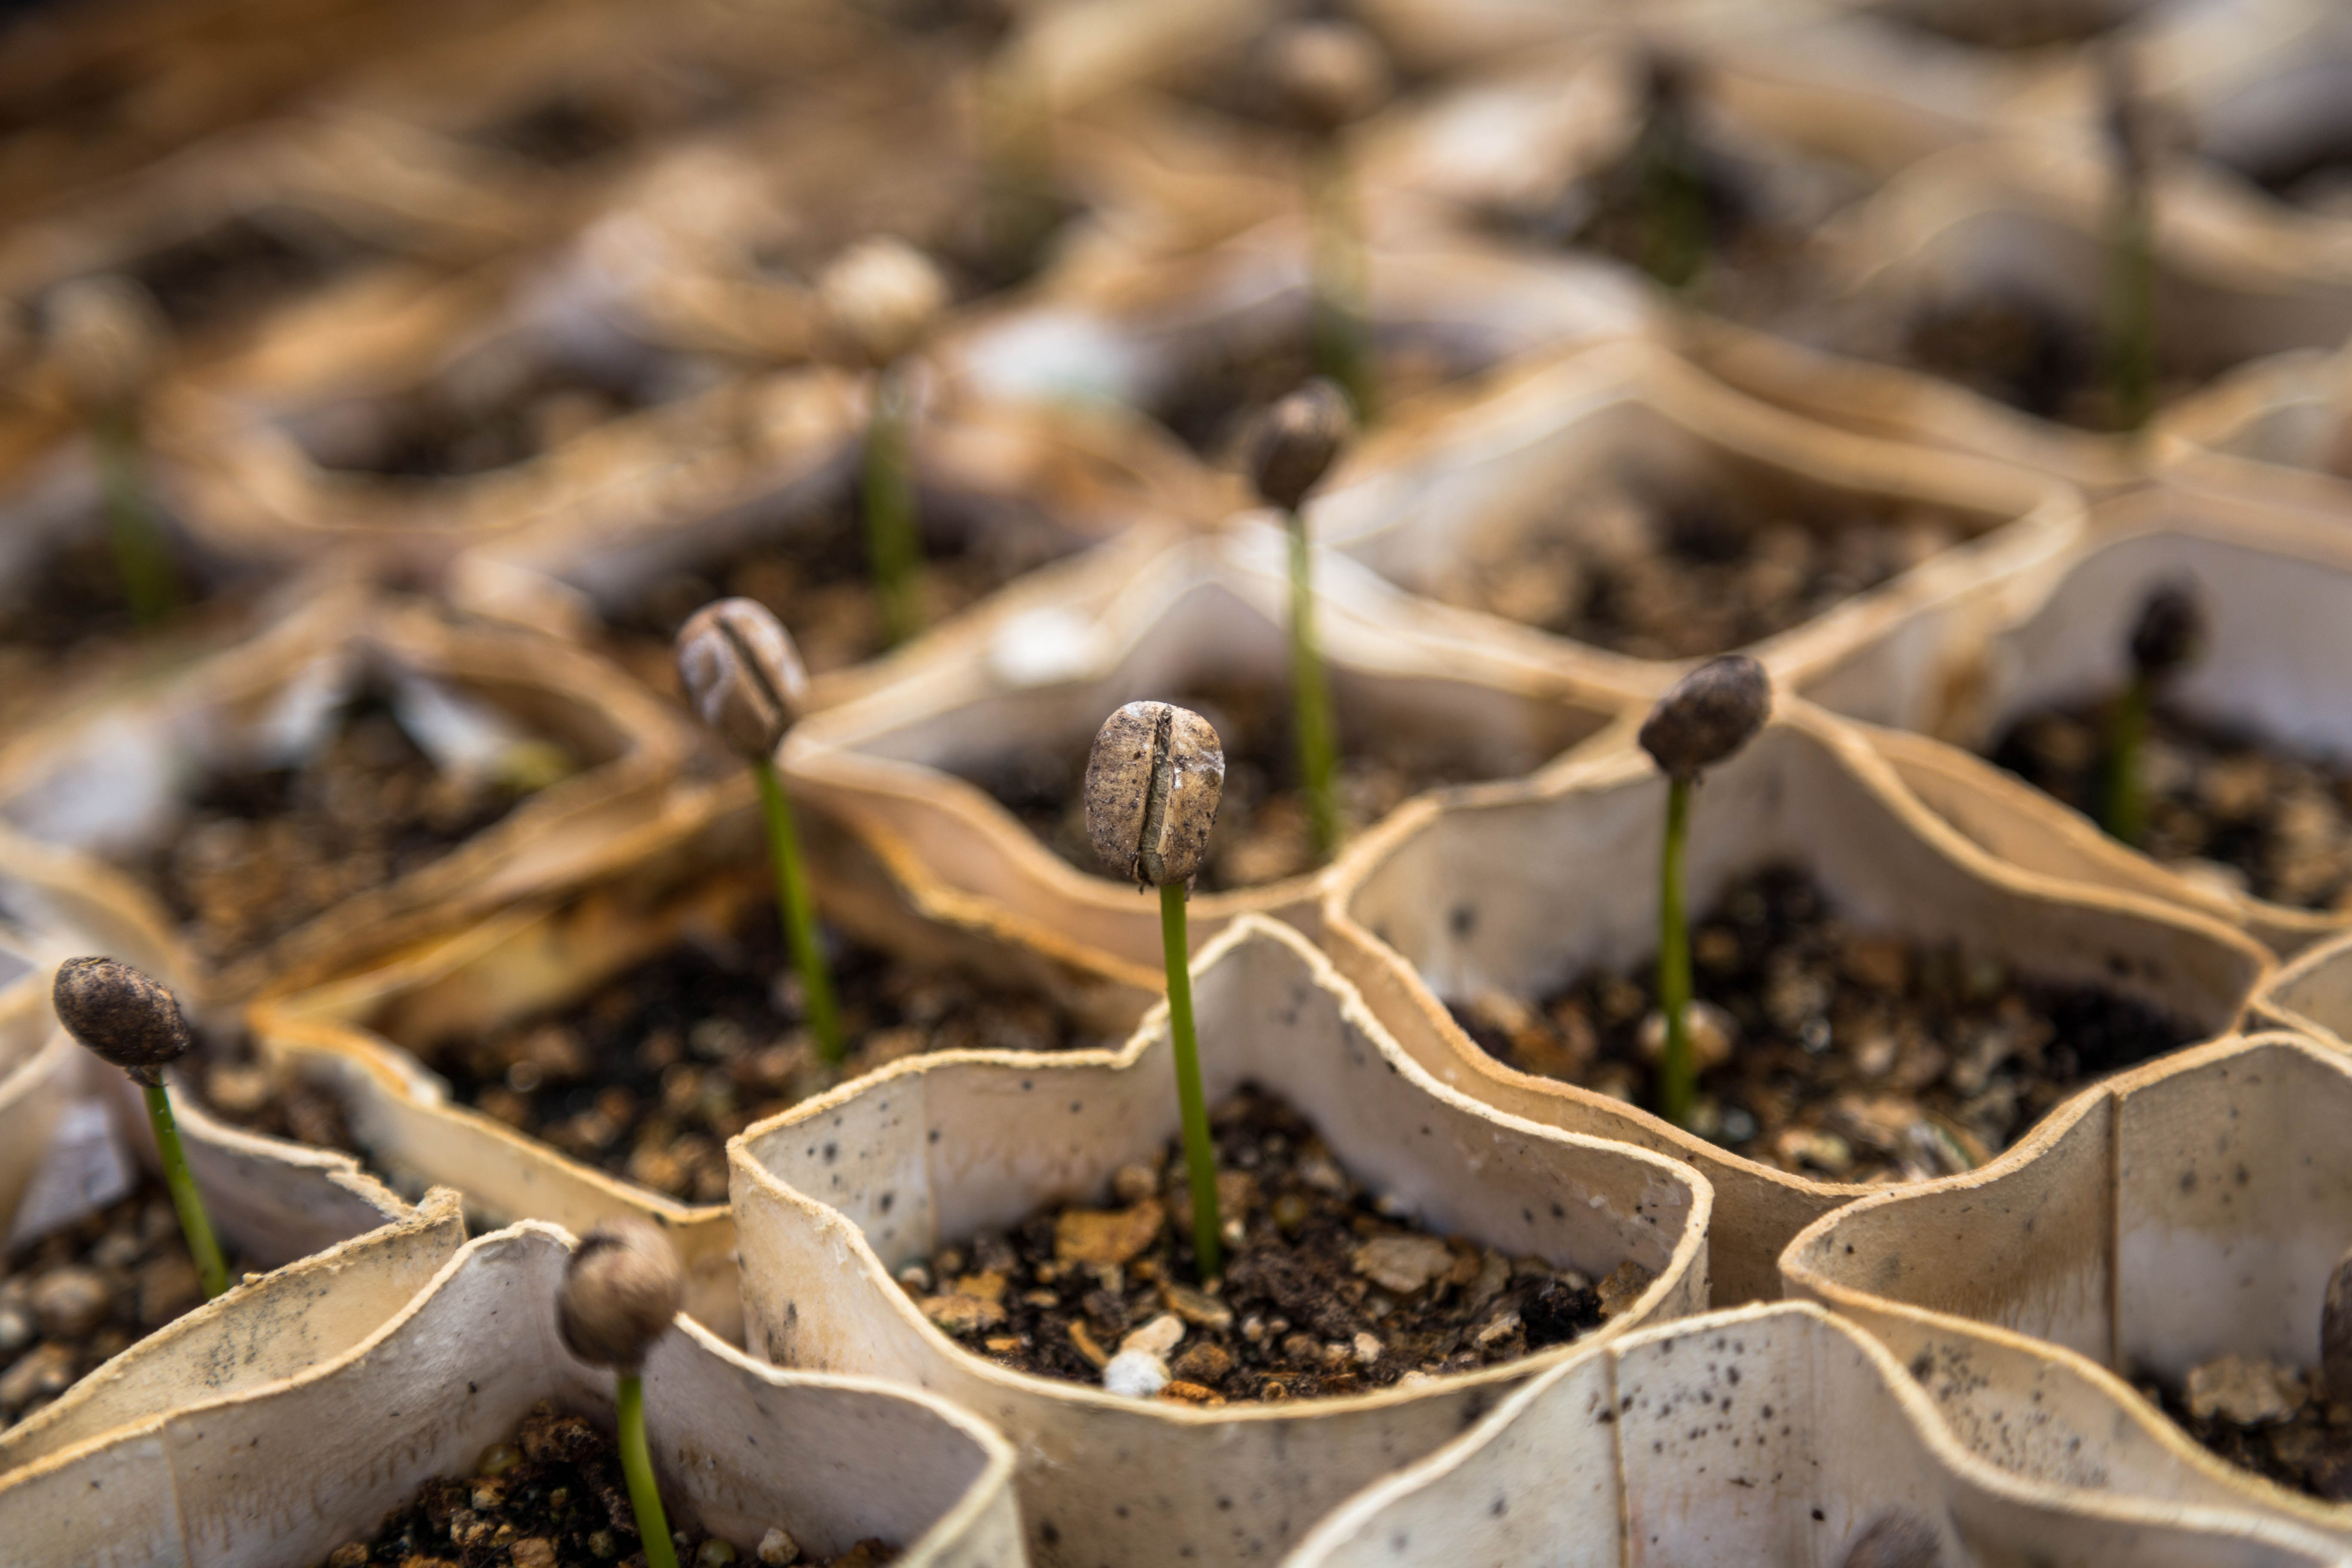 Plant the Seeds of Success When Battling a Crisis